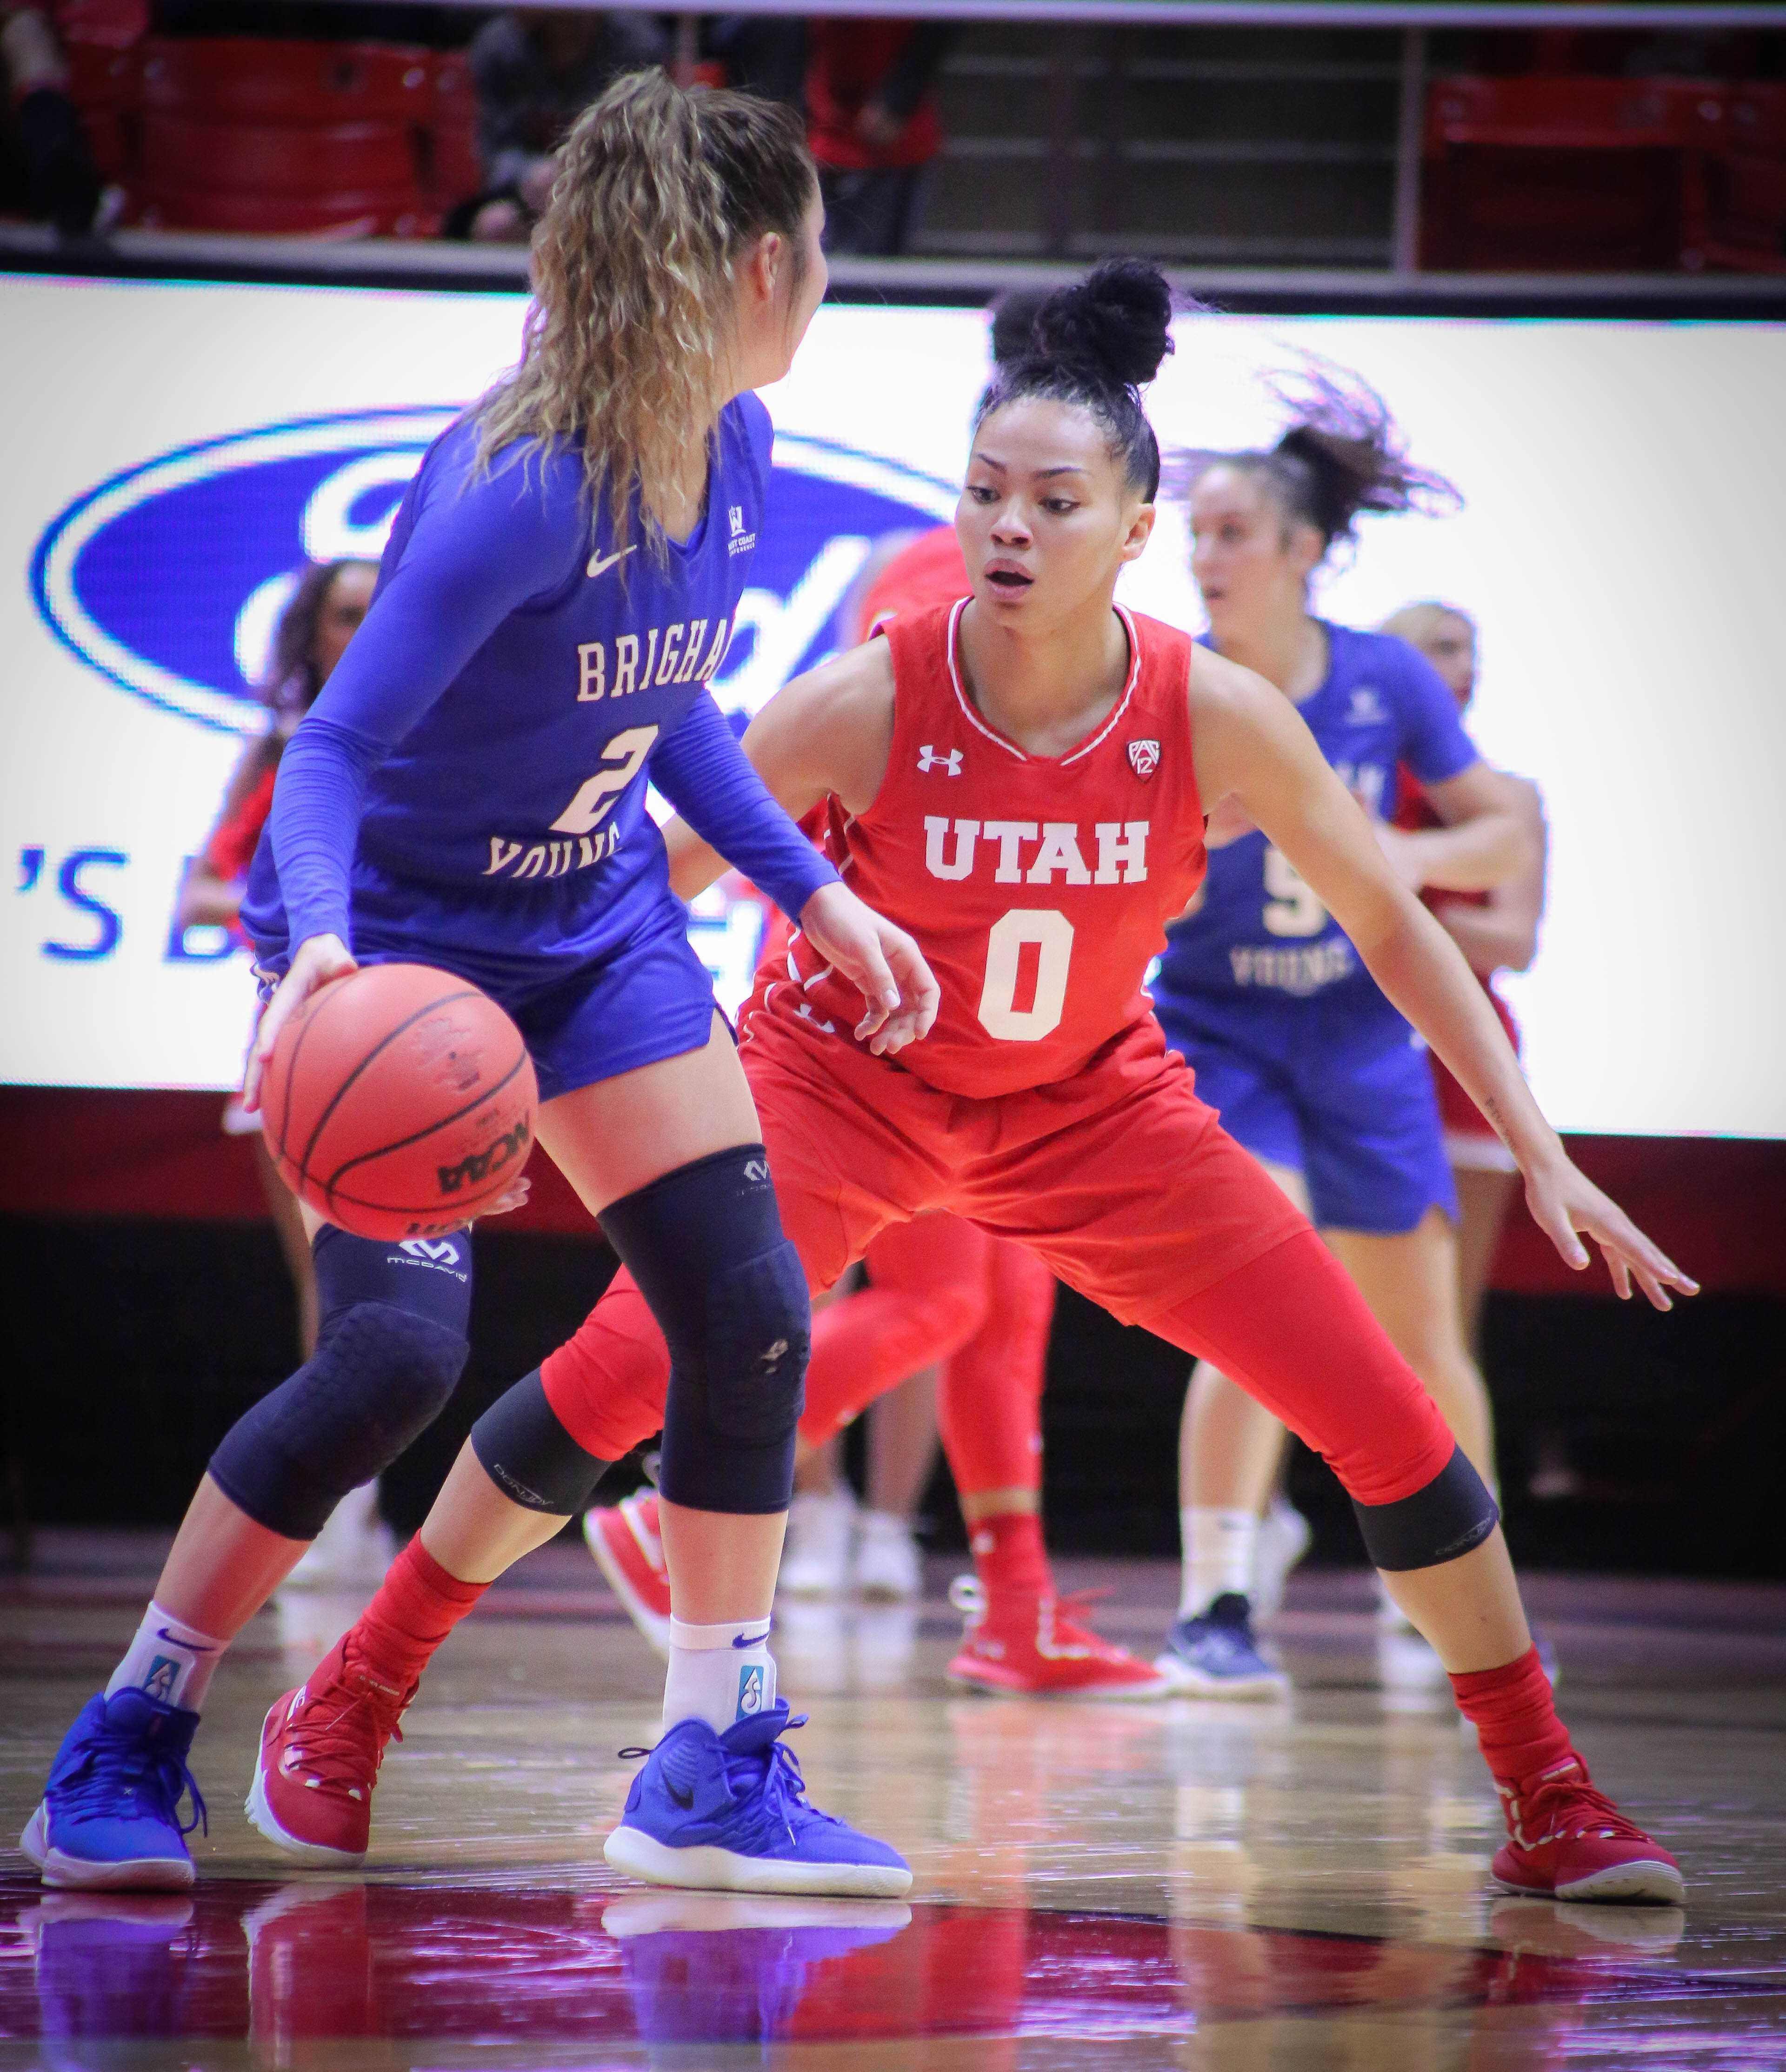 Kiana Moore (0) defends her opponent as The University of Utah Utes take on Brigham Young University at the Huntsman Center in Salt Lake City, UT on Saturaday, Dec. 8, 2018 (Photo by Cassandra Palor | The Daily Utah Chronicle)